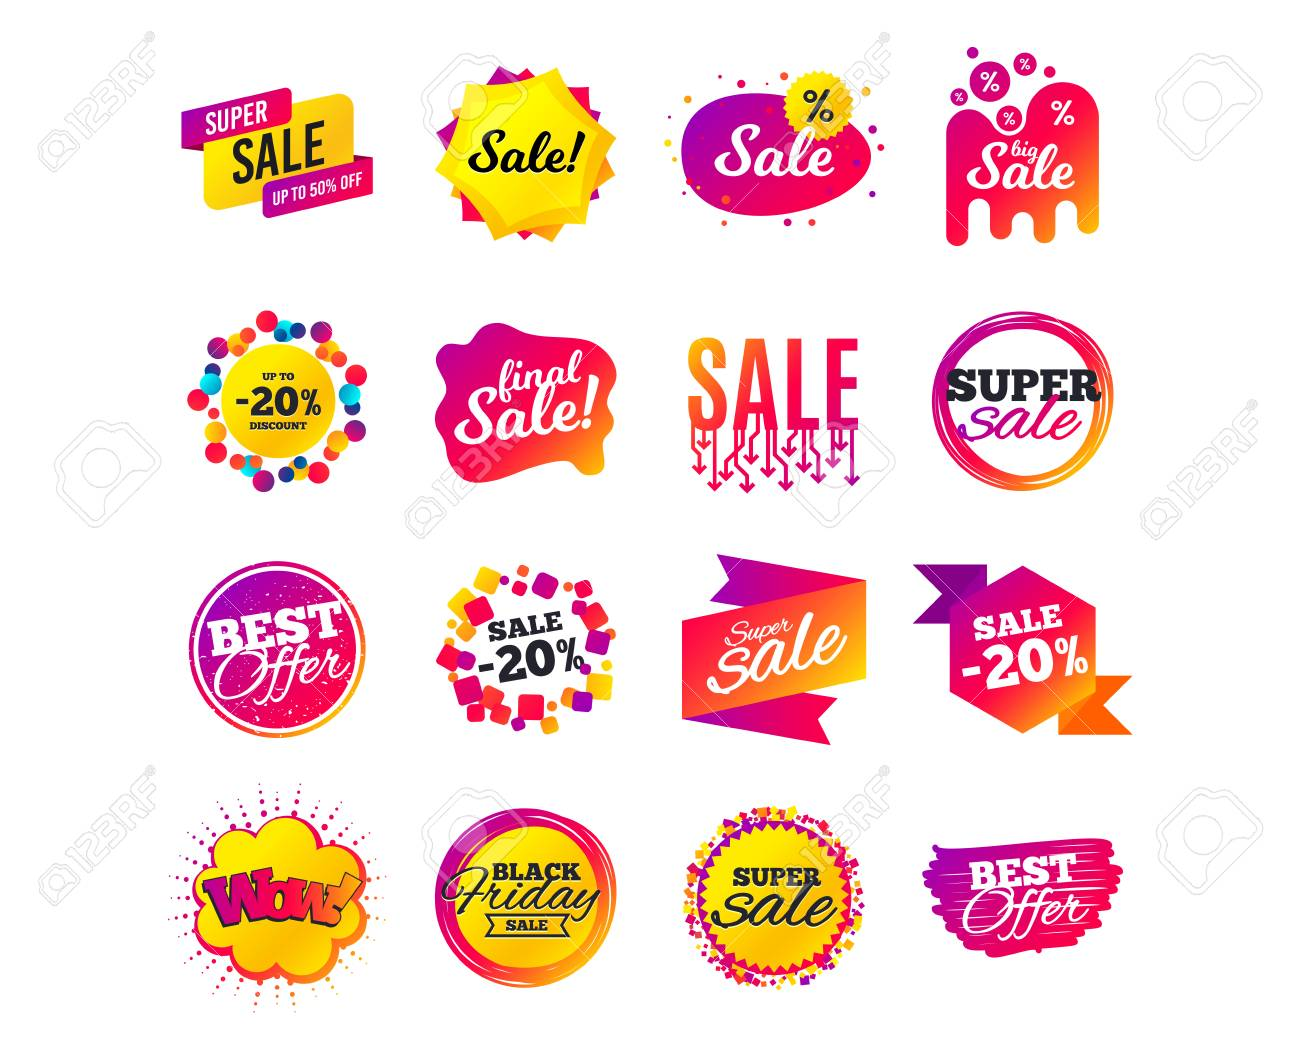 Sale banner templates design. Special offer tags. Cyber monday sale discounts. Black friday shopping icons. Best ultimate offer. Super shopping discount icons. Vector - 111104267